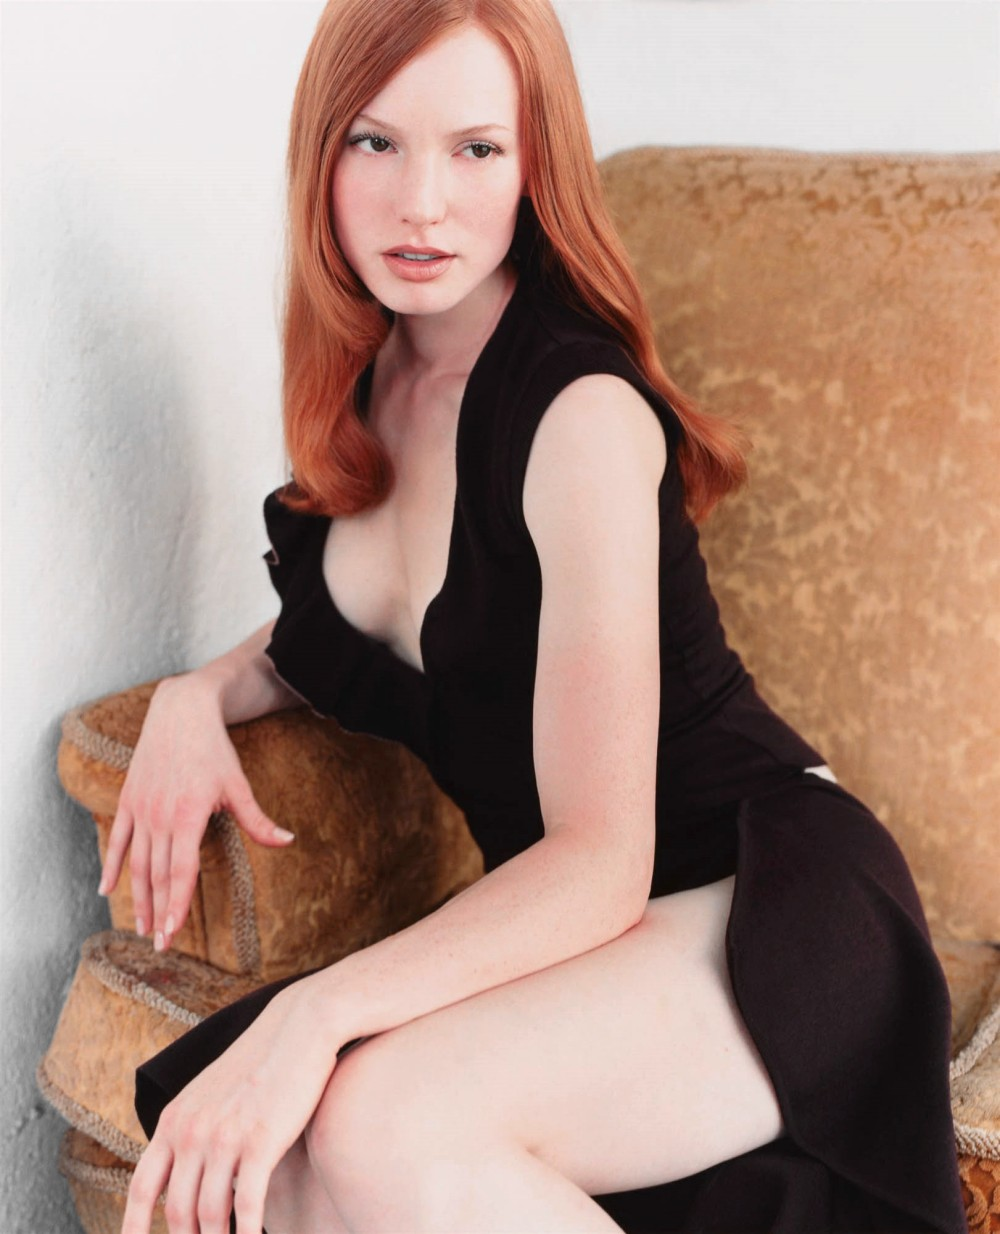 Hollywood Actress Alicia Witt Hot Pics Celeb Hot Pics